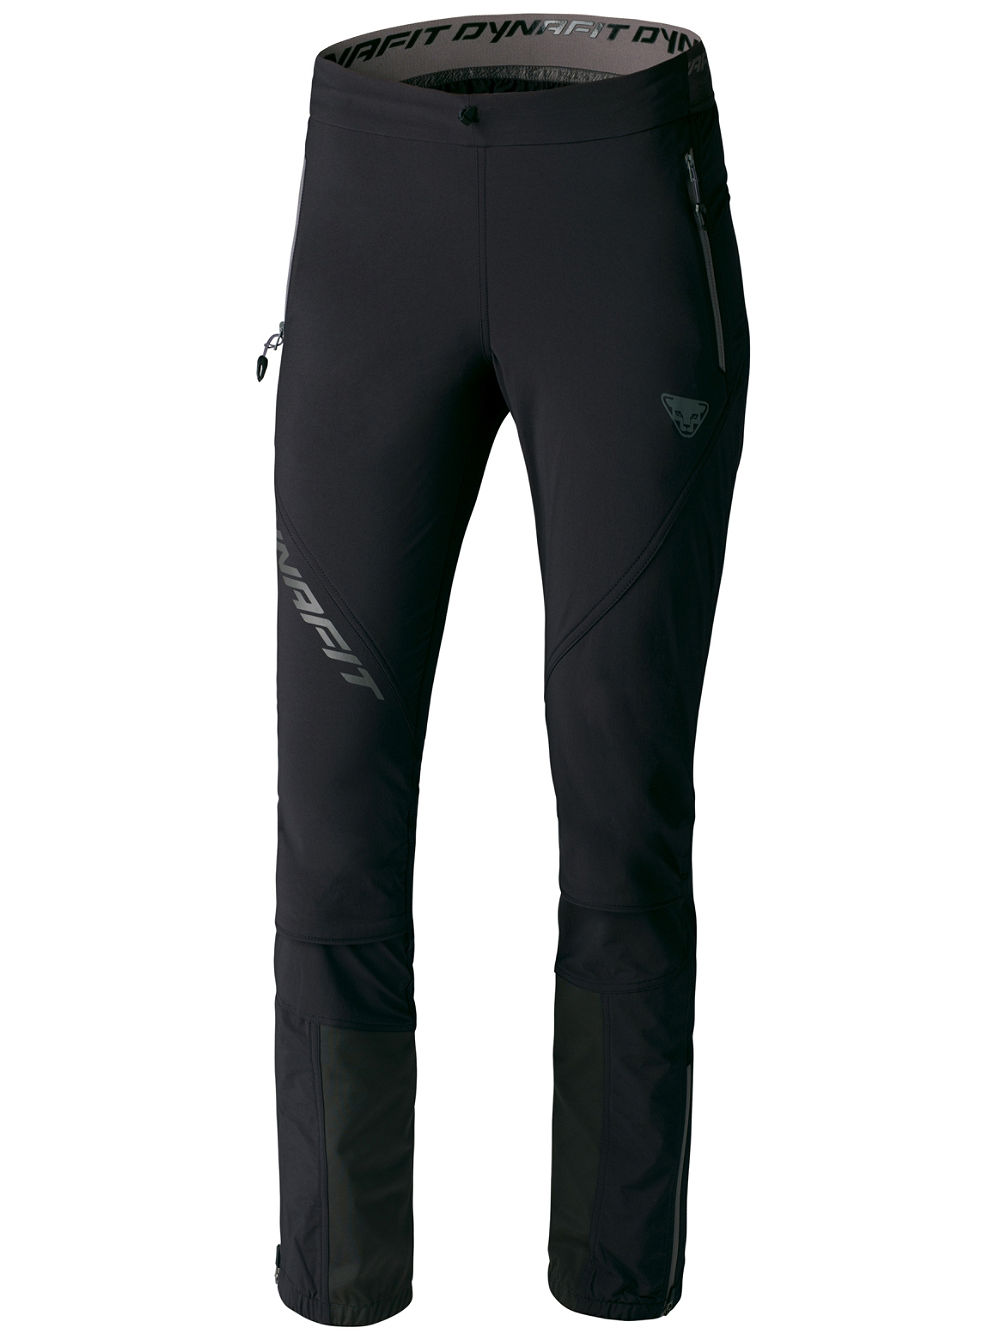 Speedfit Dynastretch Pants